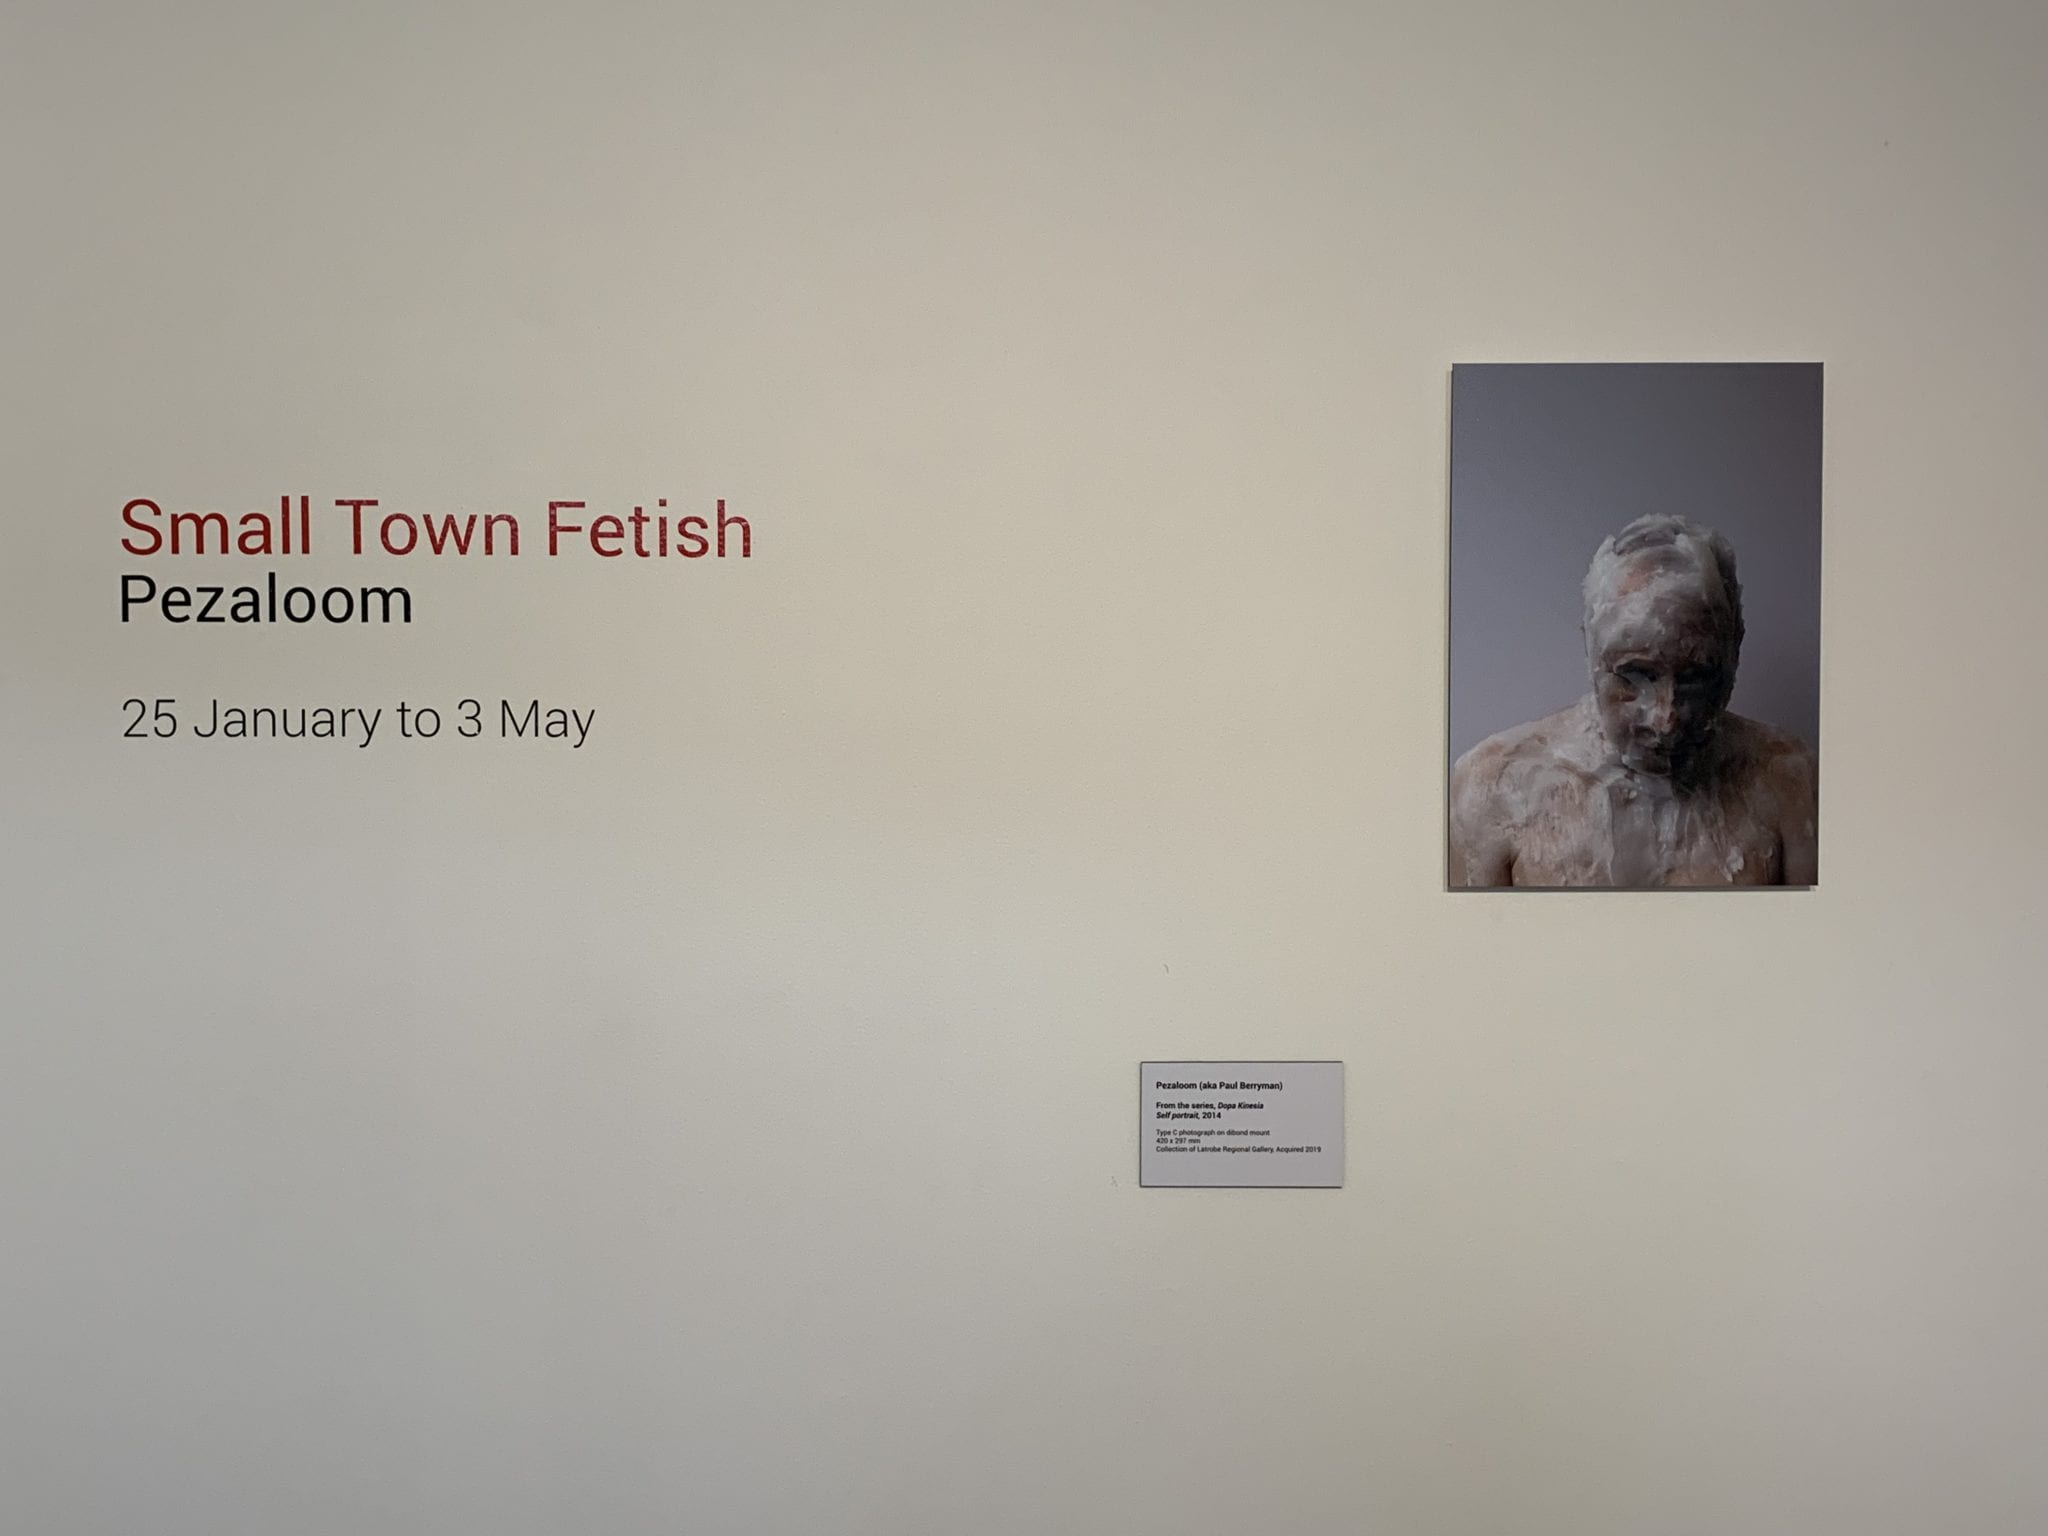 Exhibition Documentation, Small Town Fetish, Pezaloom, 25 January to 21 June 2020, Gallery 4, Latrobe Regional Gallery. Photograph: Latrobe Regional Gallery.